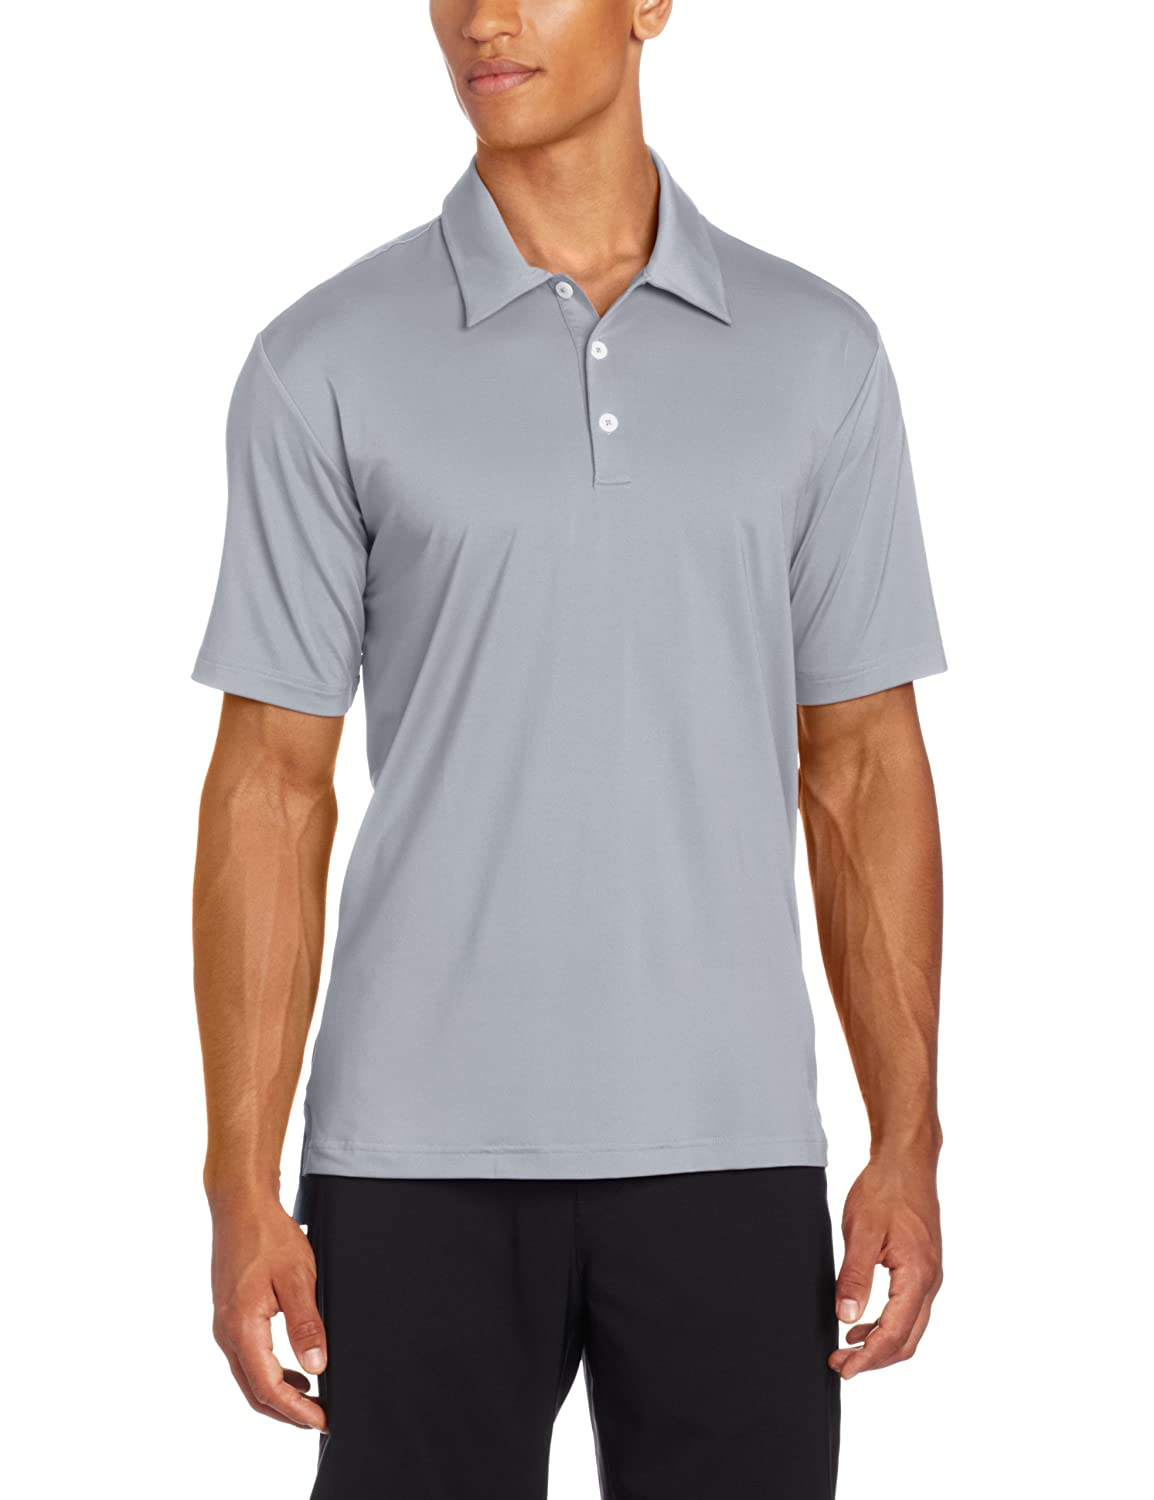 adidas Golf Mens Climalite Solid Stretch Jersey Polo, Chrome ...